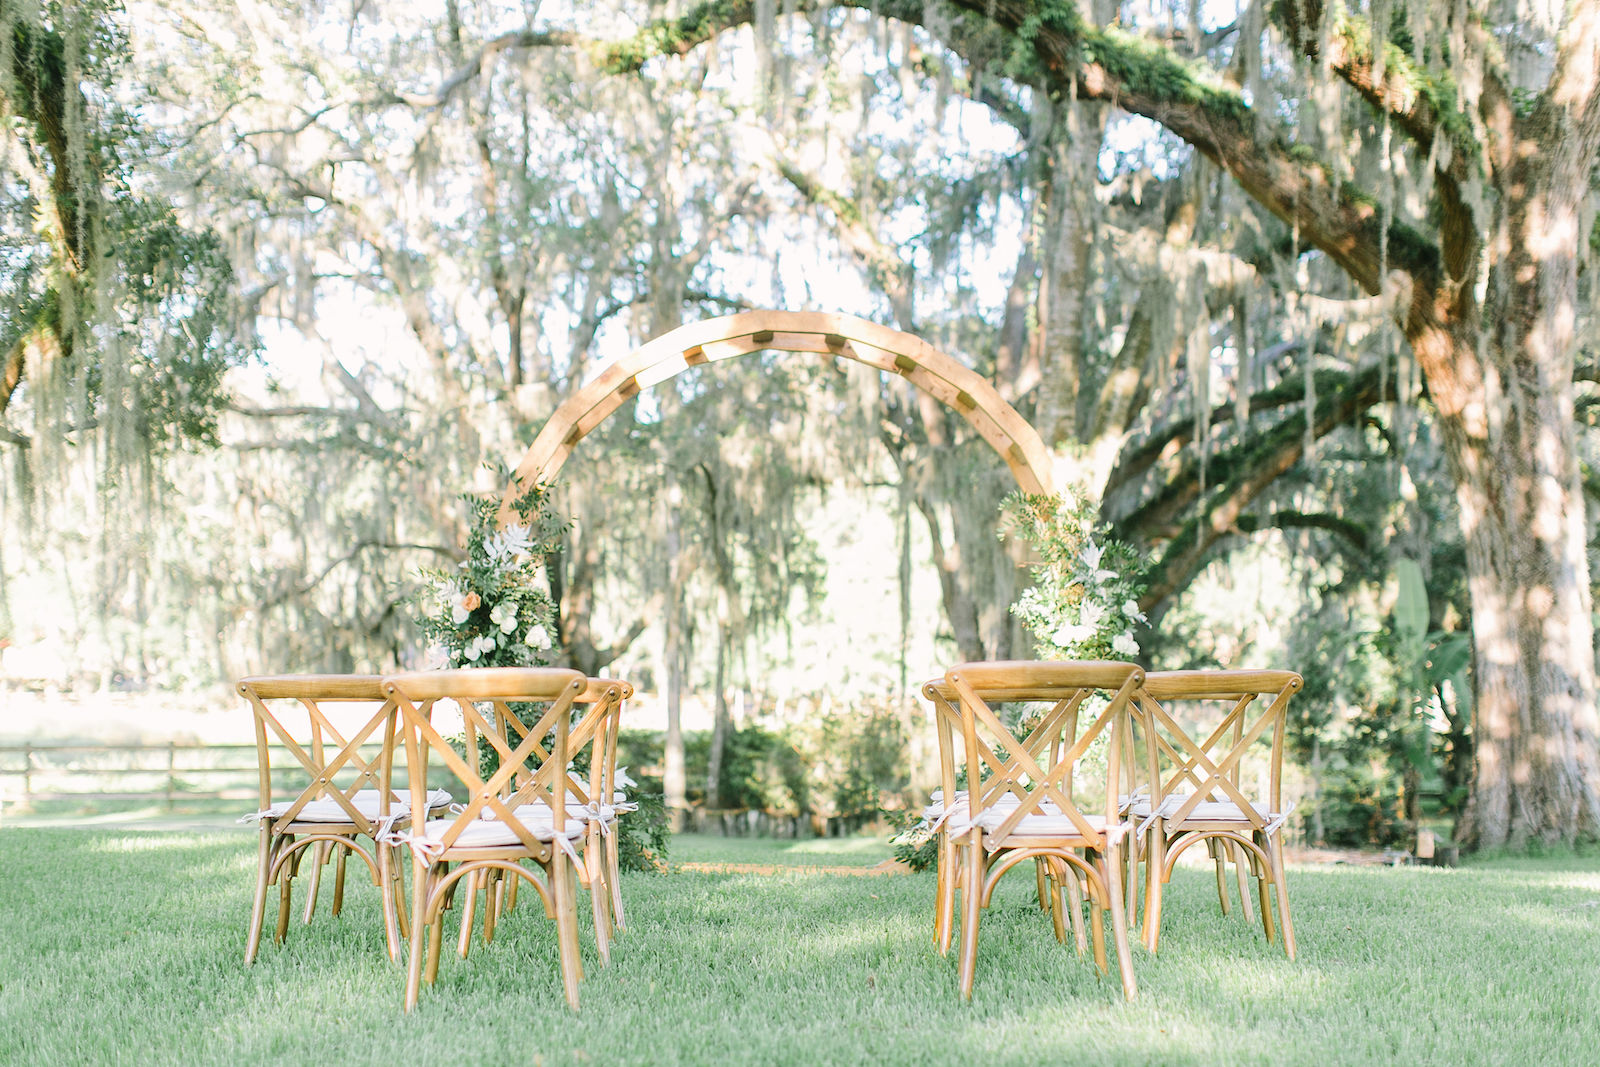 Outdoor Florida At Home Front Back Yard Wedding Ceremony | Round Wood Moon Arch Wedding Ceremony Backdrop with Natural Ivory and Peach Garland Floral Arrangements | Wood French Country Cross Back Chairs with Ivory Cushions | Intimate COVID Social Distancing Wedding